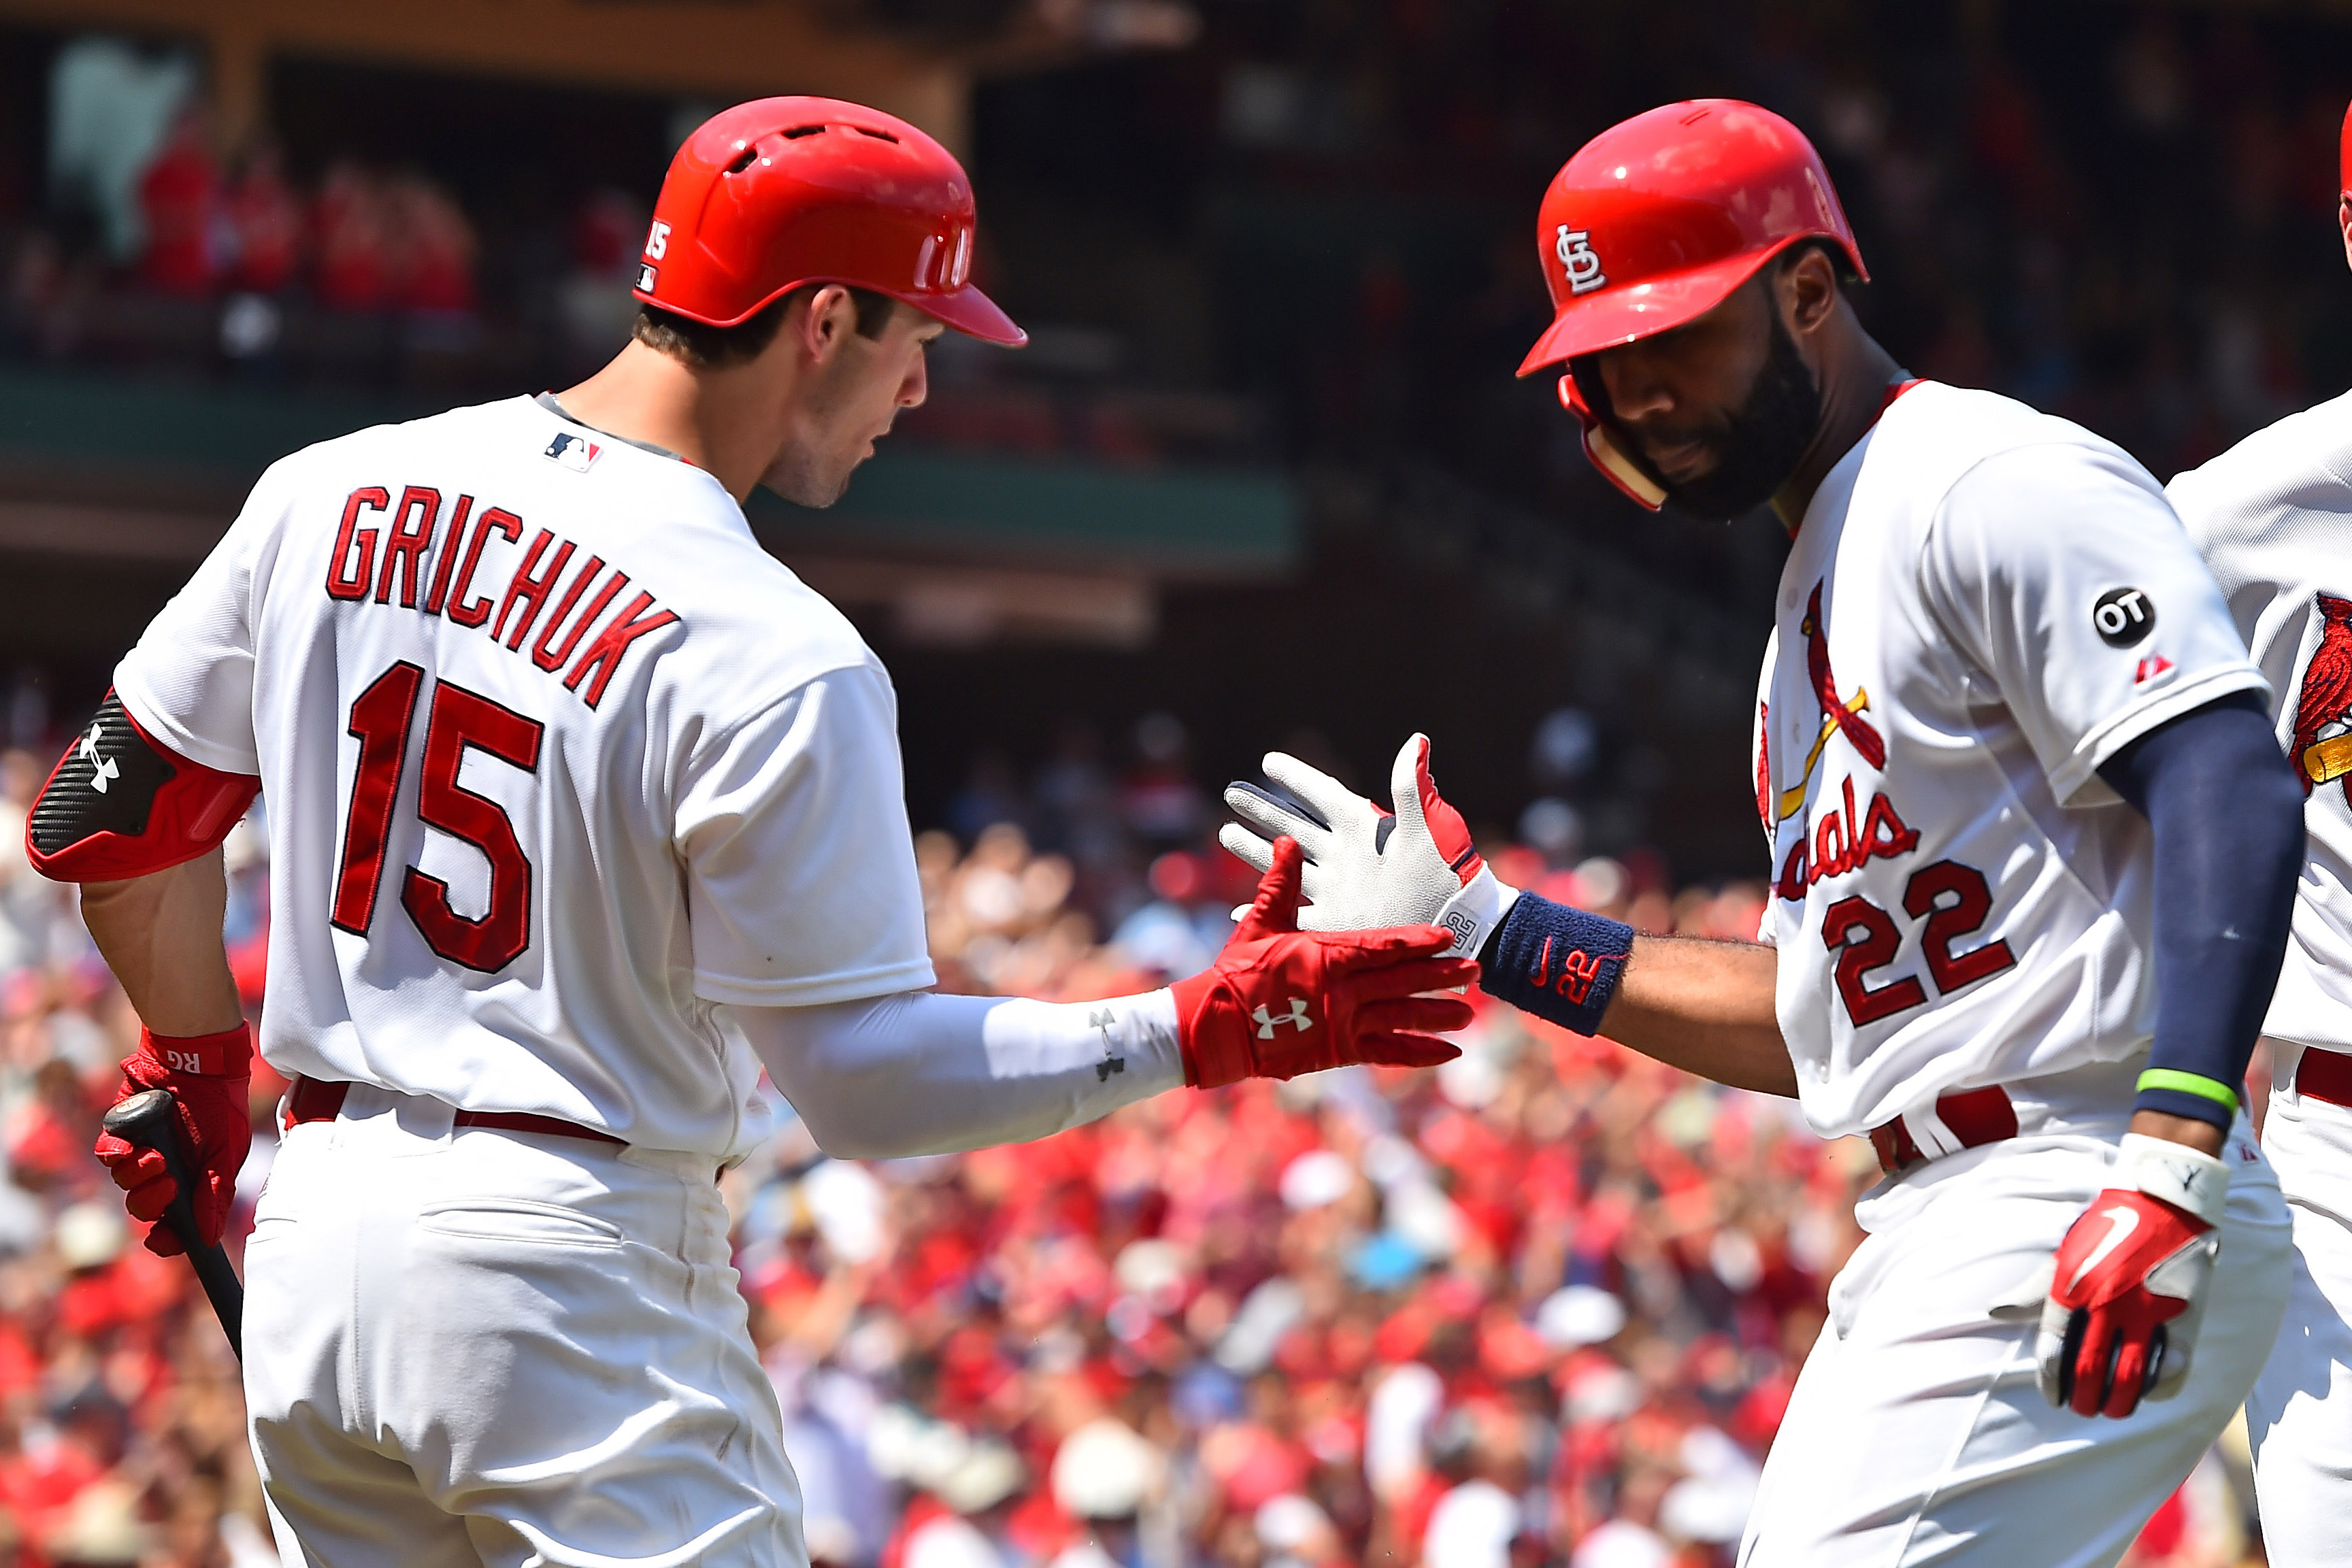 Jason Heyward is gone, but Randall Grichuk leads a strong group of youngsters in St. Louis. How will they do this year?